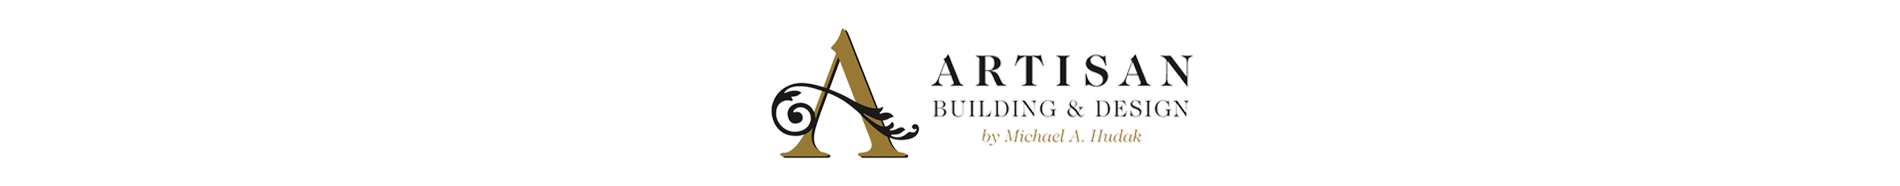 Artisan Building & Design in Medina